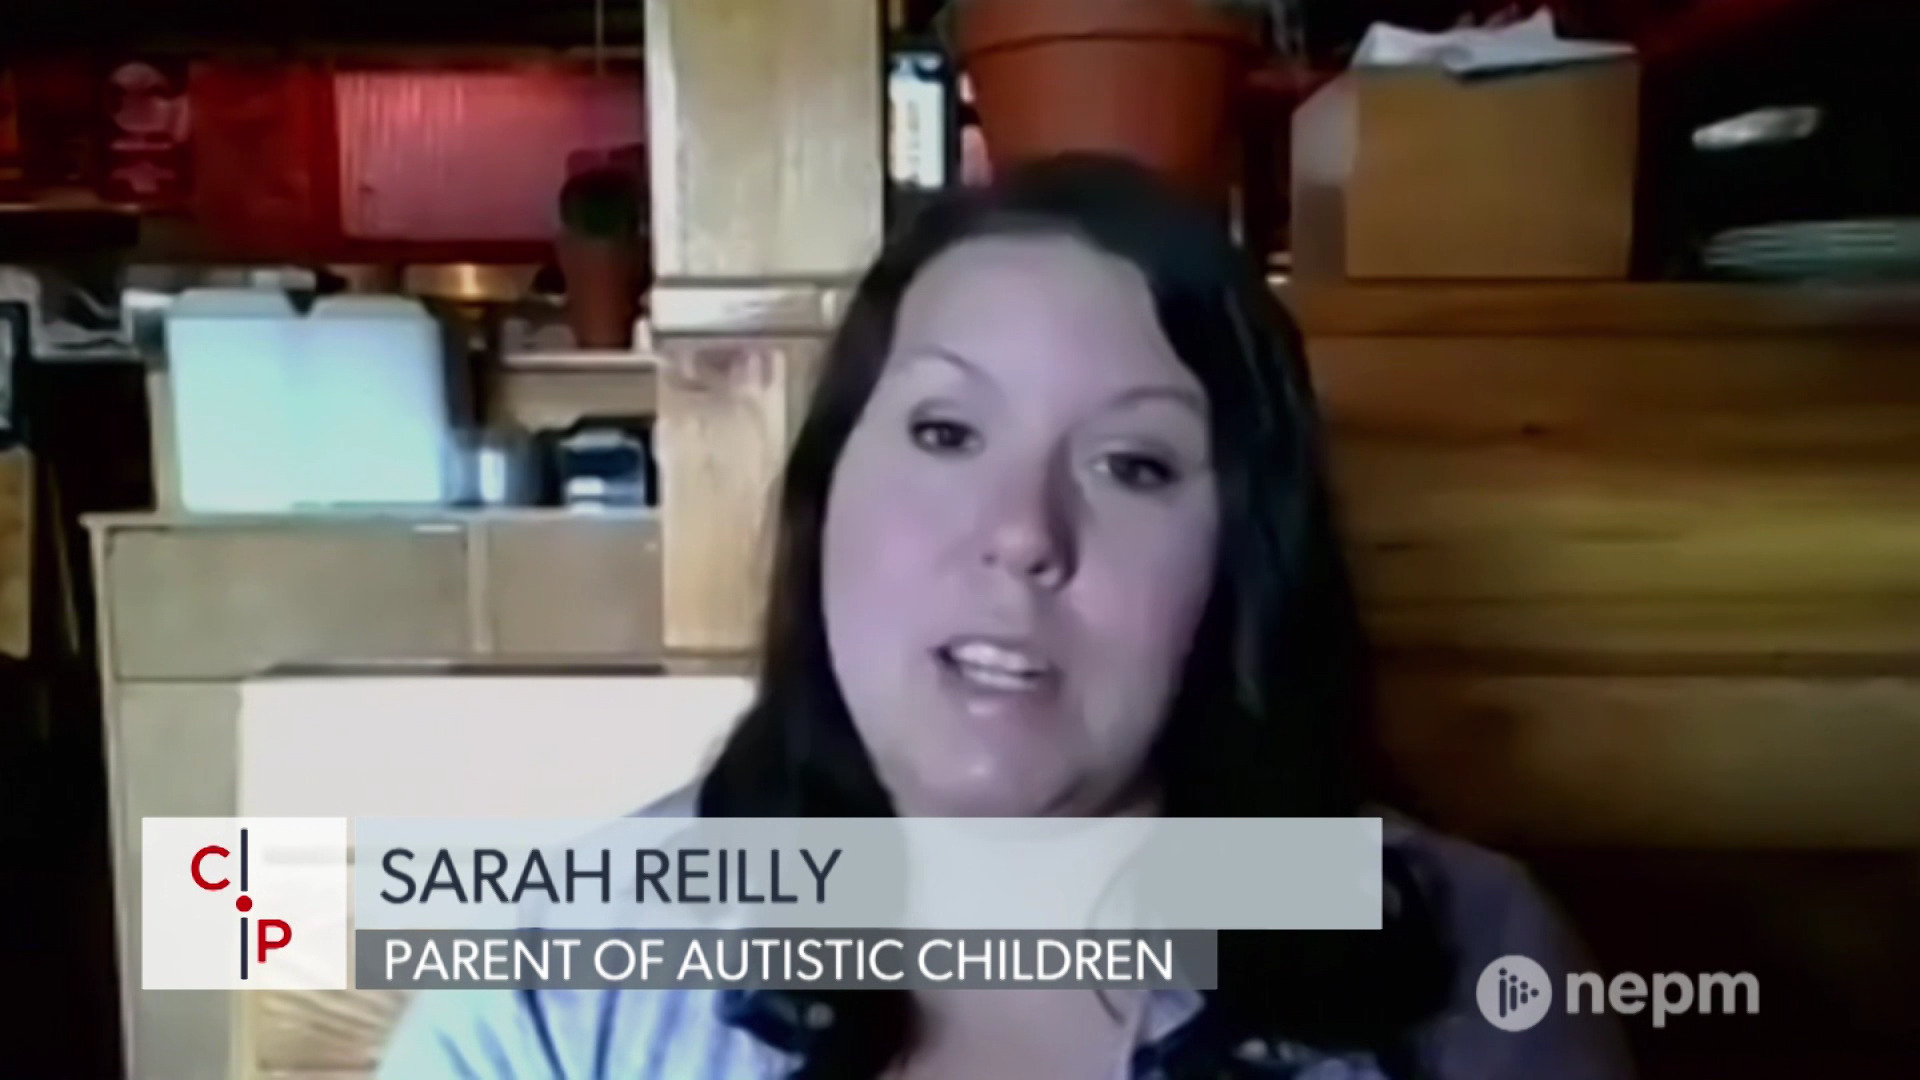 WATCH: Western Mass. mom Sarah Reilly shares how remote learning is challenging for parents of children on the autism spectrum.